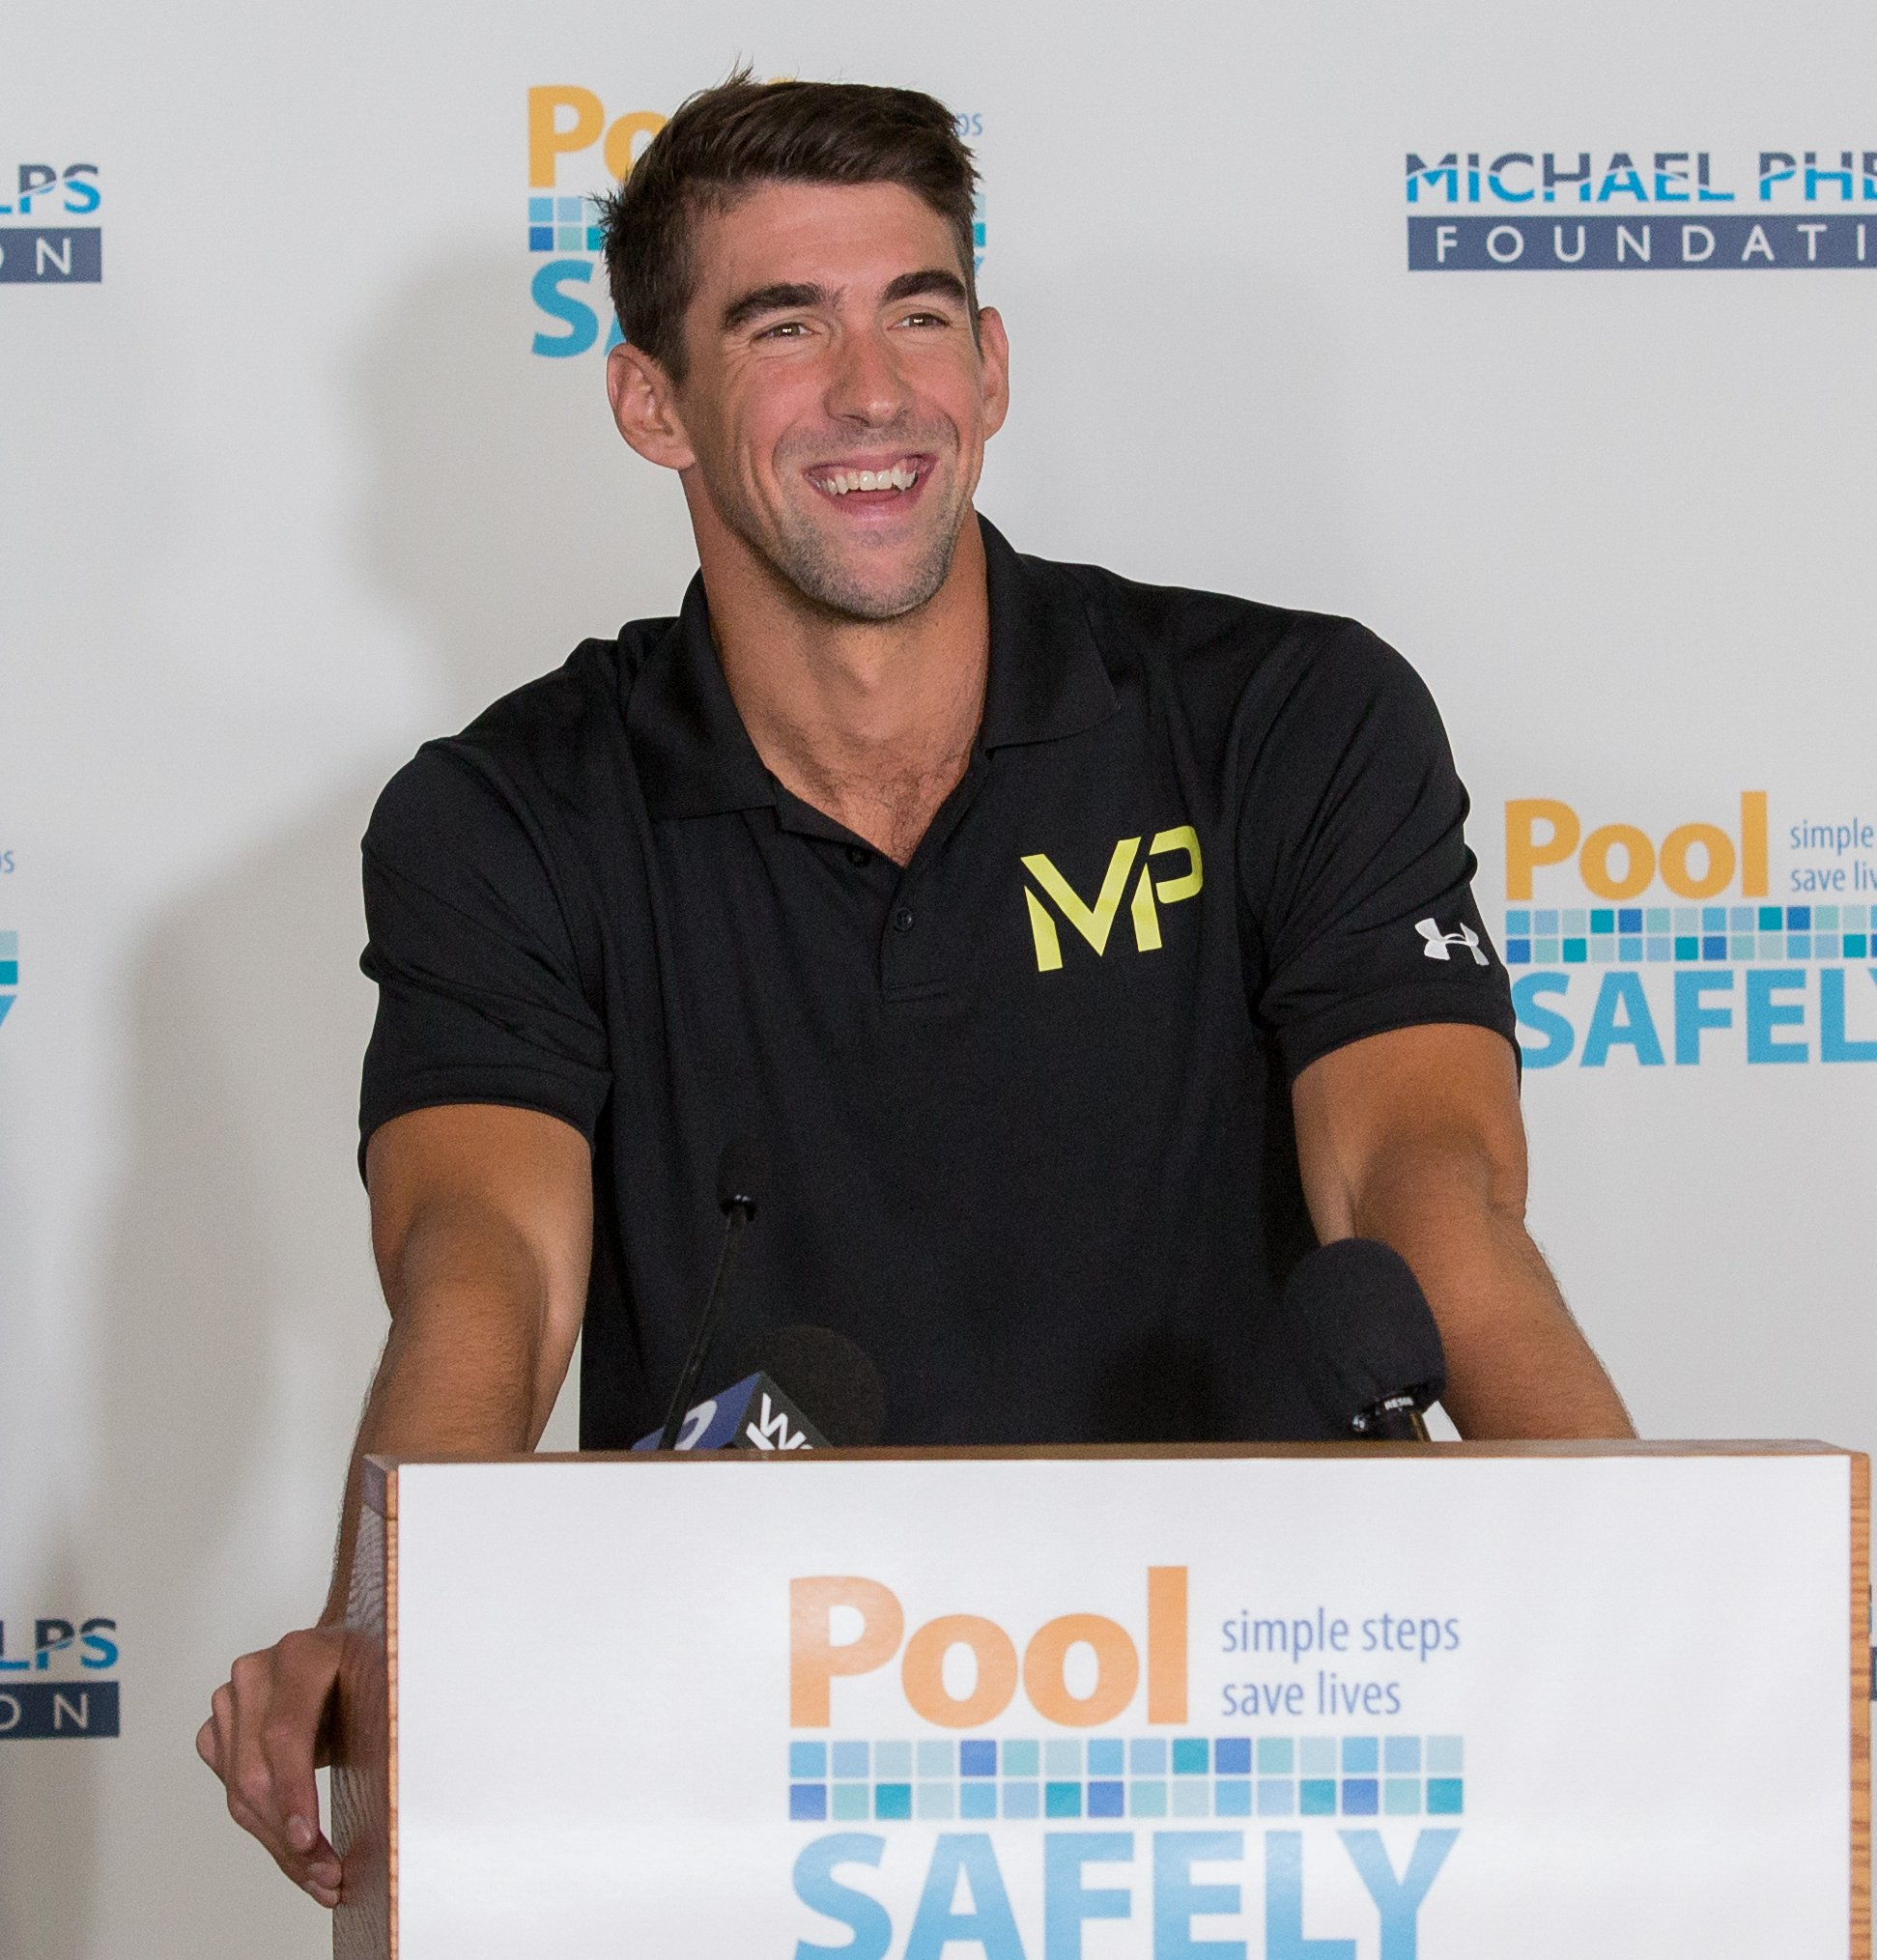 Michael Phelps and Michael Phelps Foundation l Photo : Wikimedia Commons/ Creative Commons Attribution 2.0 Generic